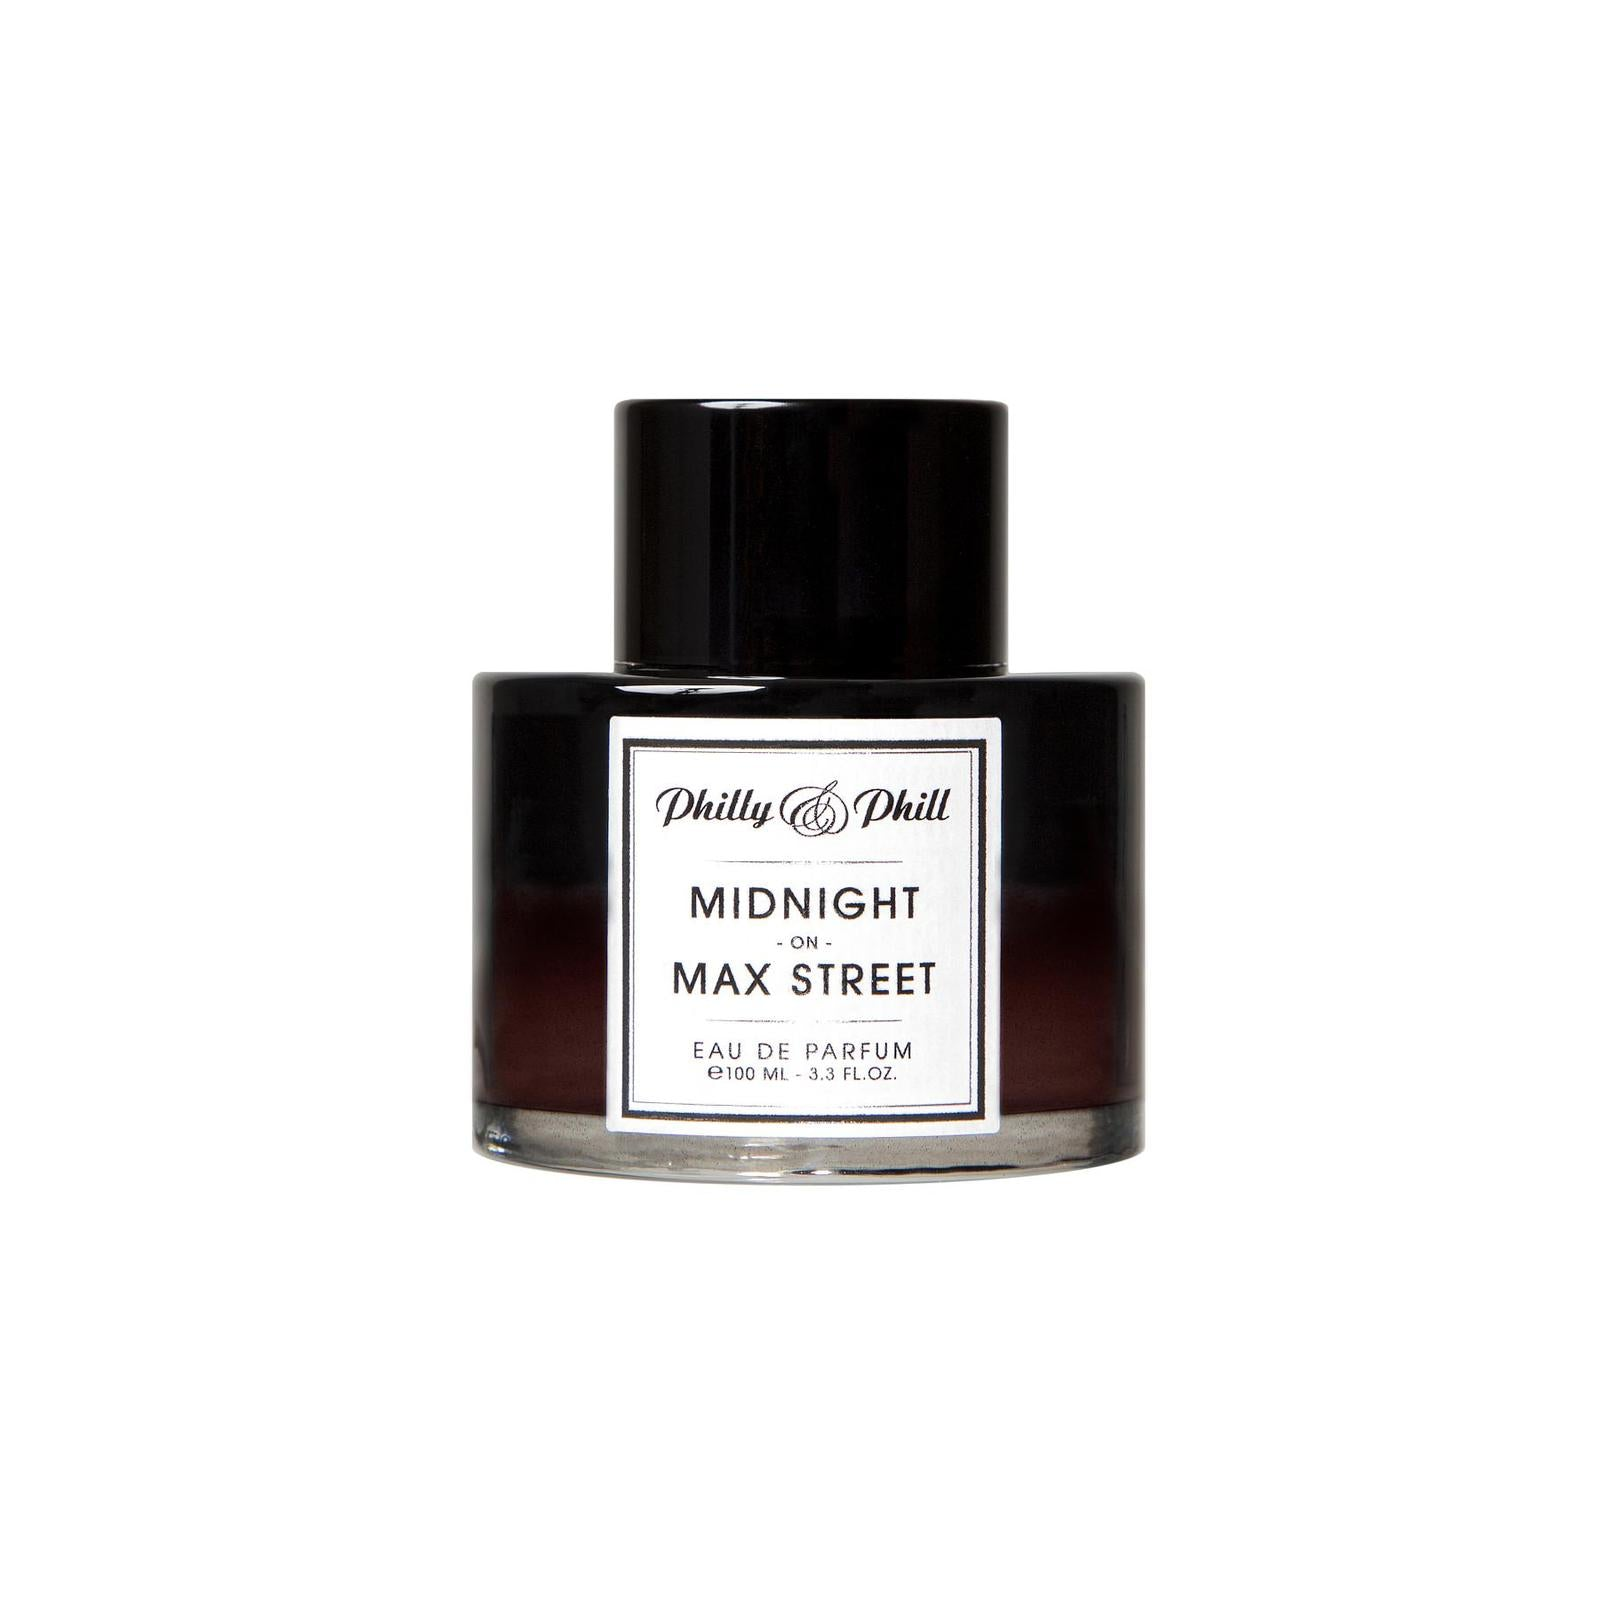 Philly & Phill Midnight on Max Street Eau de Parfum